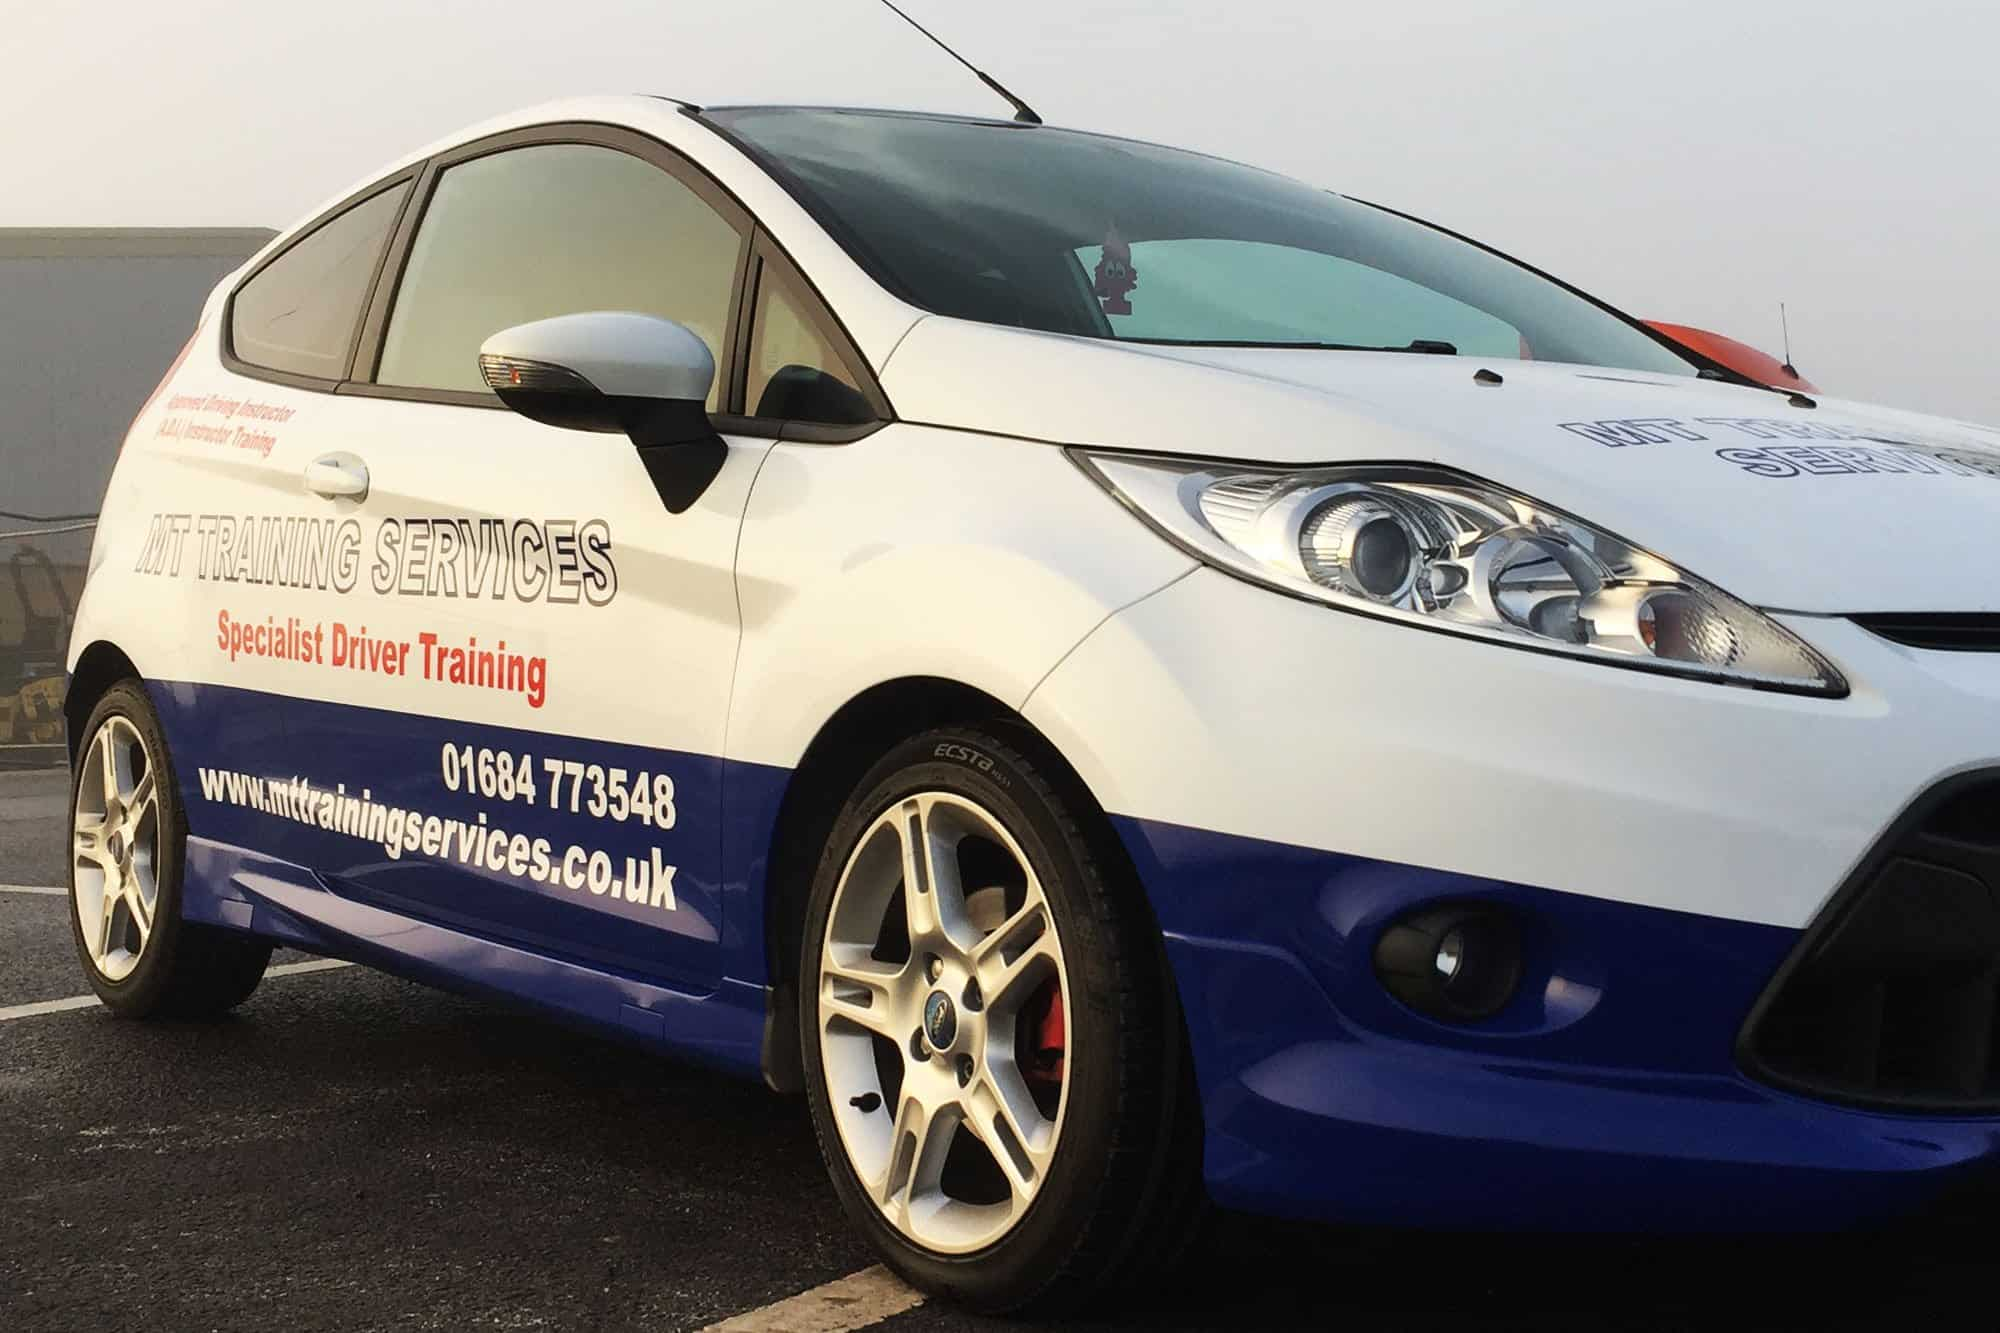 c7a2b388216ba9 Partial vehicle wrap on a Ford Fiesta using Avery Supreme wrap material